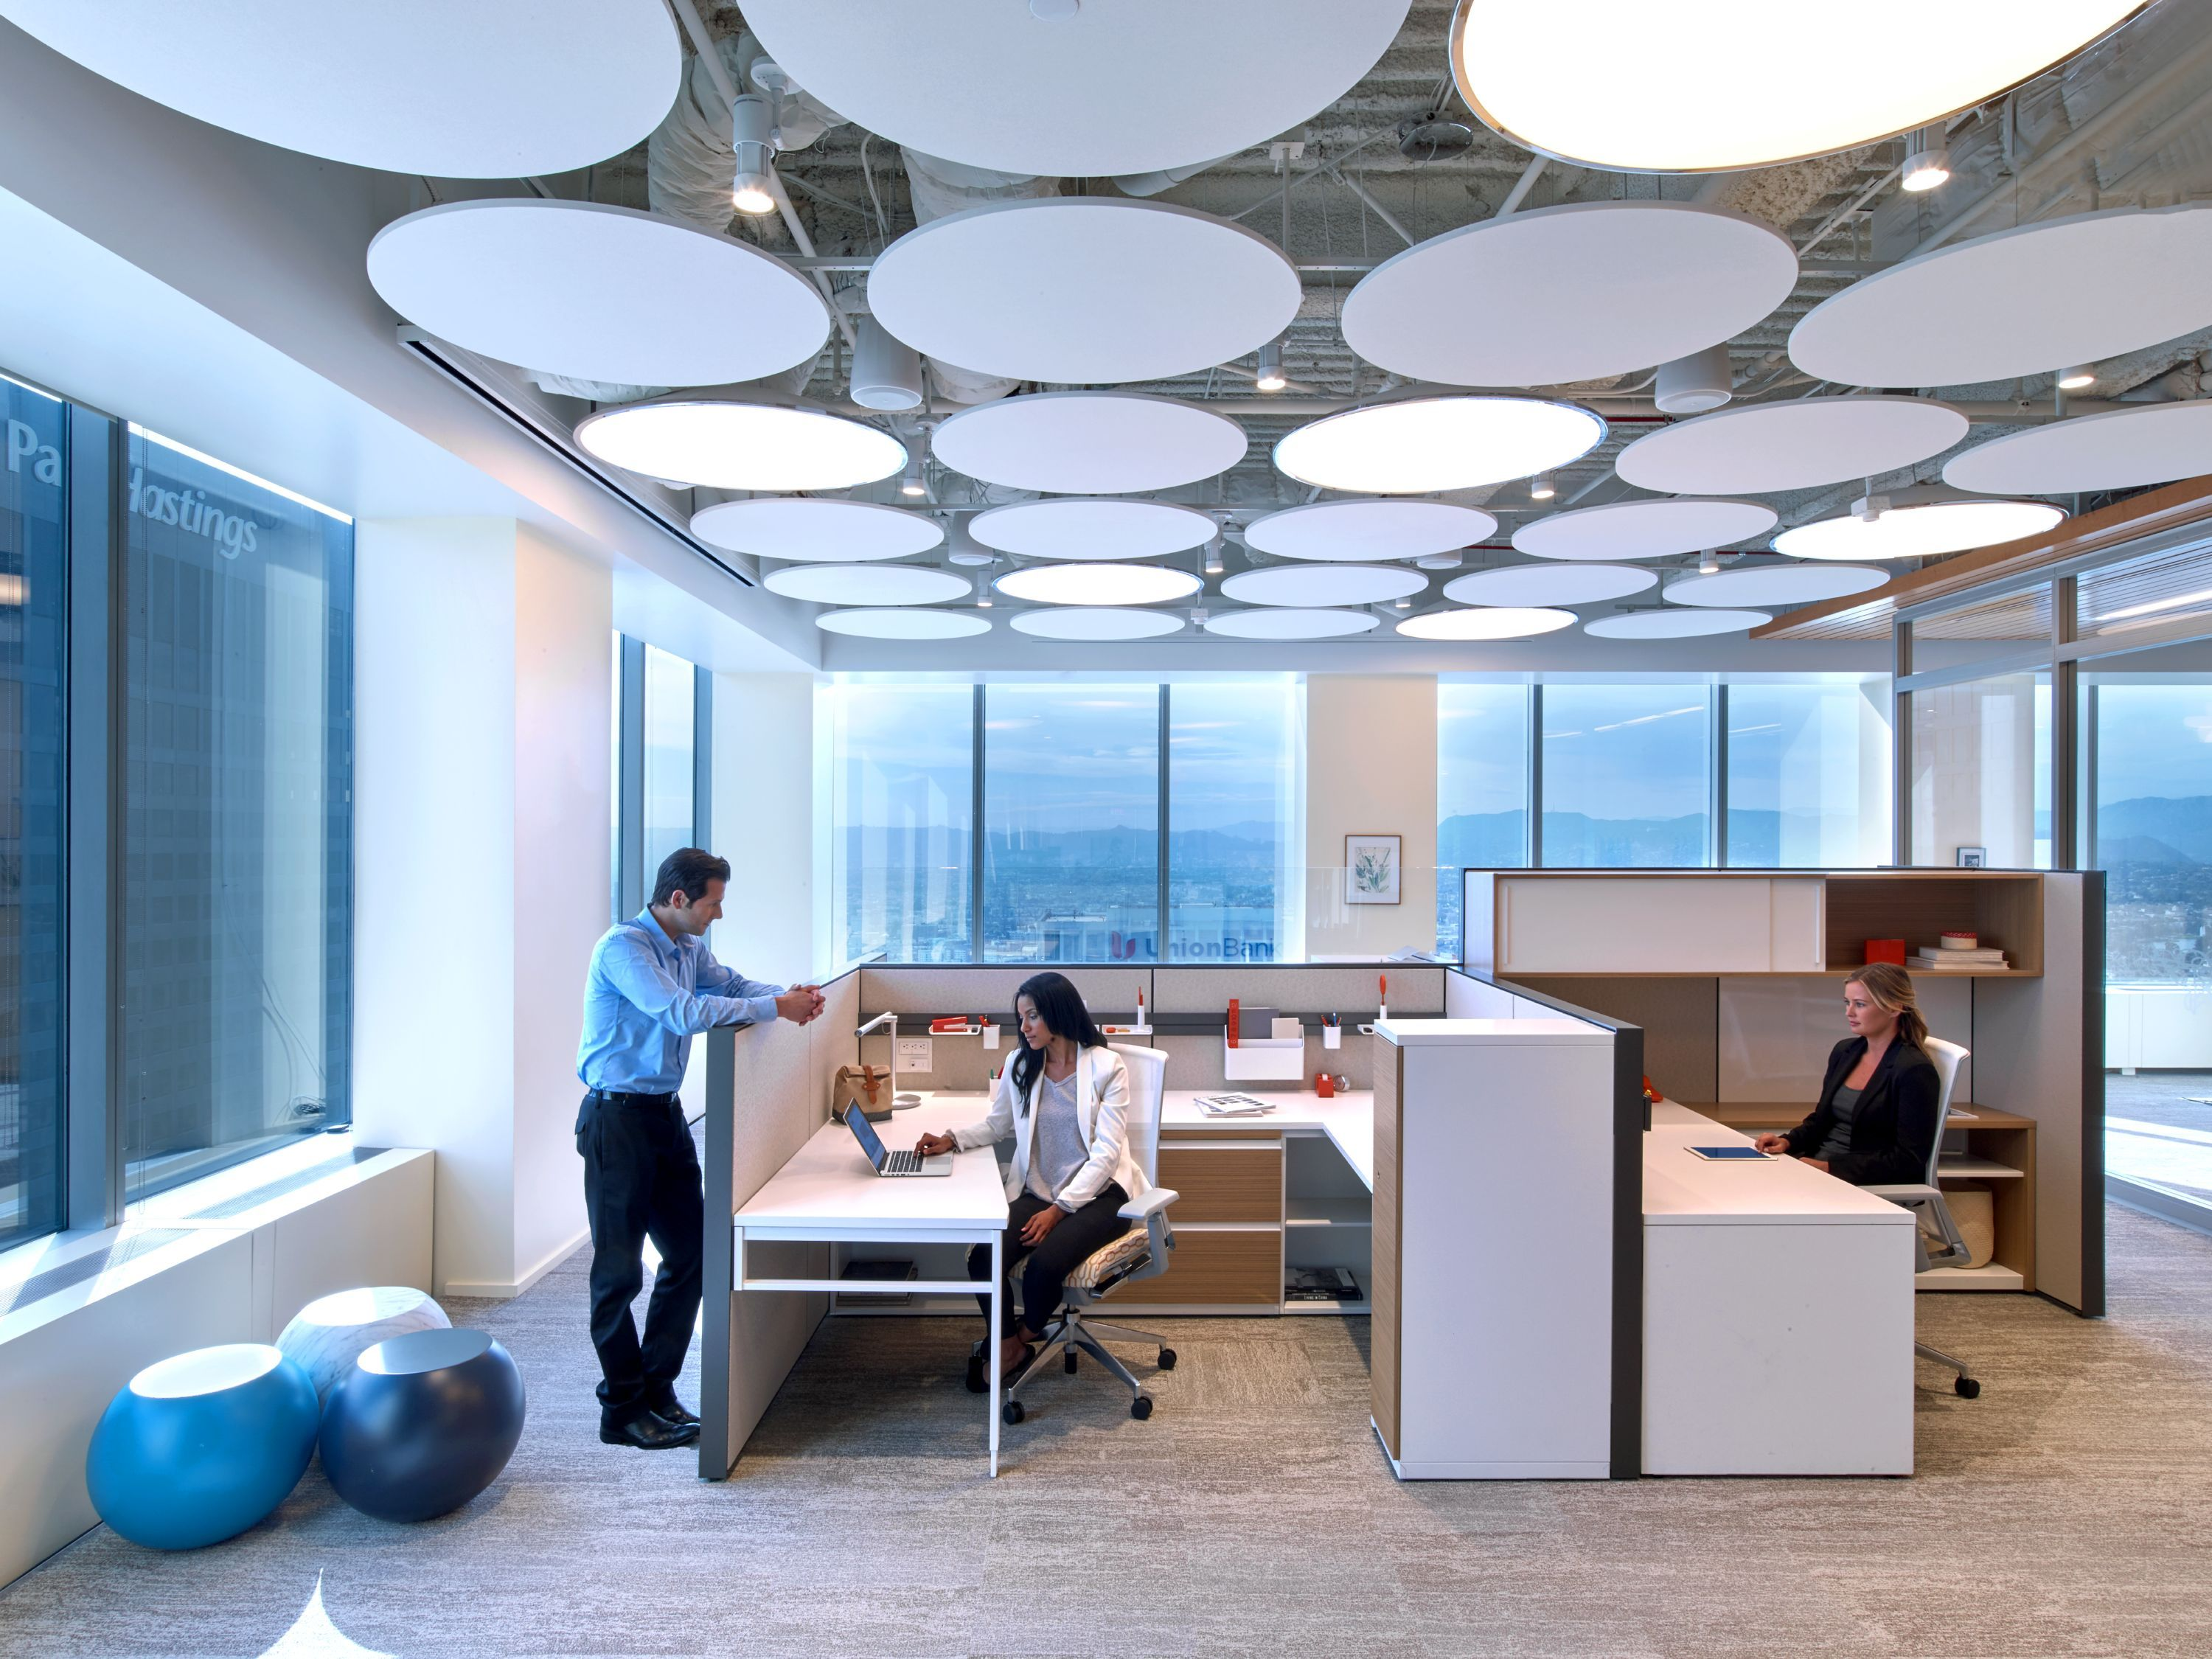 Haworth La Showroom Workspaces Haworth Workspaces Pinterest # Haworth Muebles Oficina